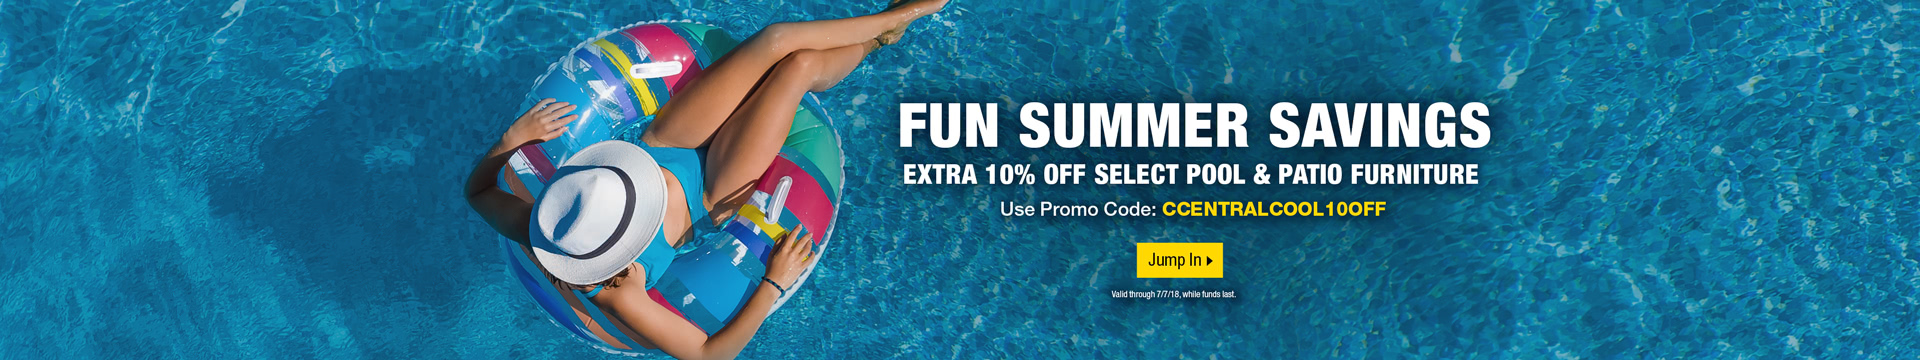 FUN SUMMER SAVINGS